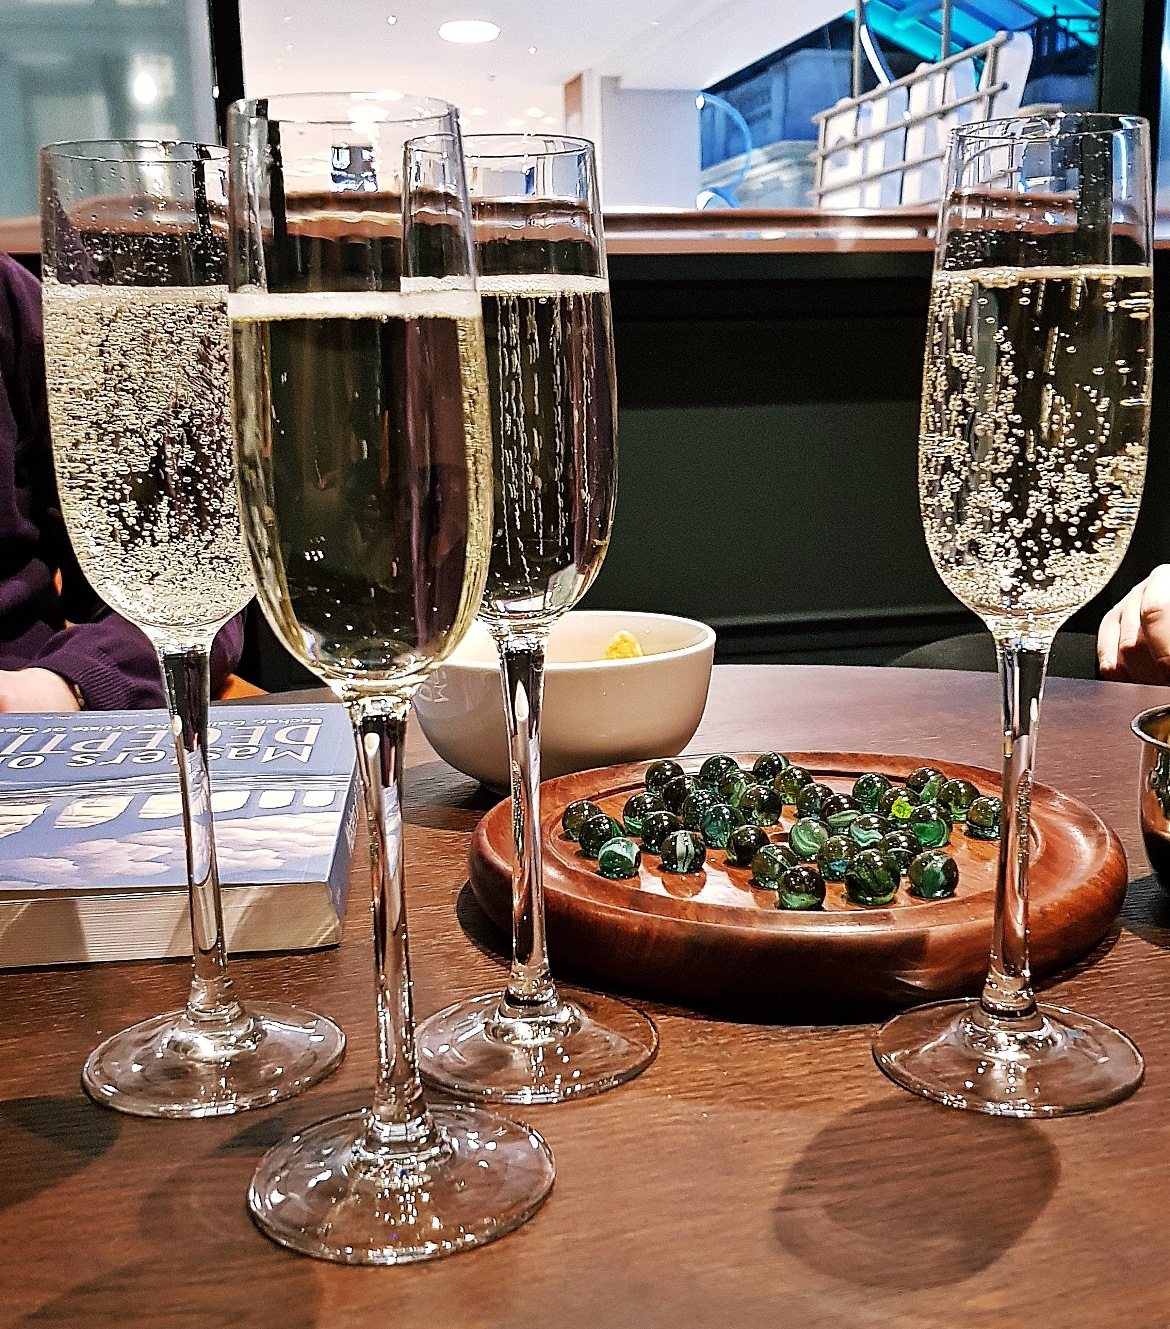 Celebratory prosecco - Our Finest Hour, escape room by Escape Hunt Leeds, review by BeckyBecky Blogs